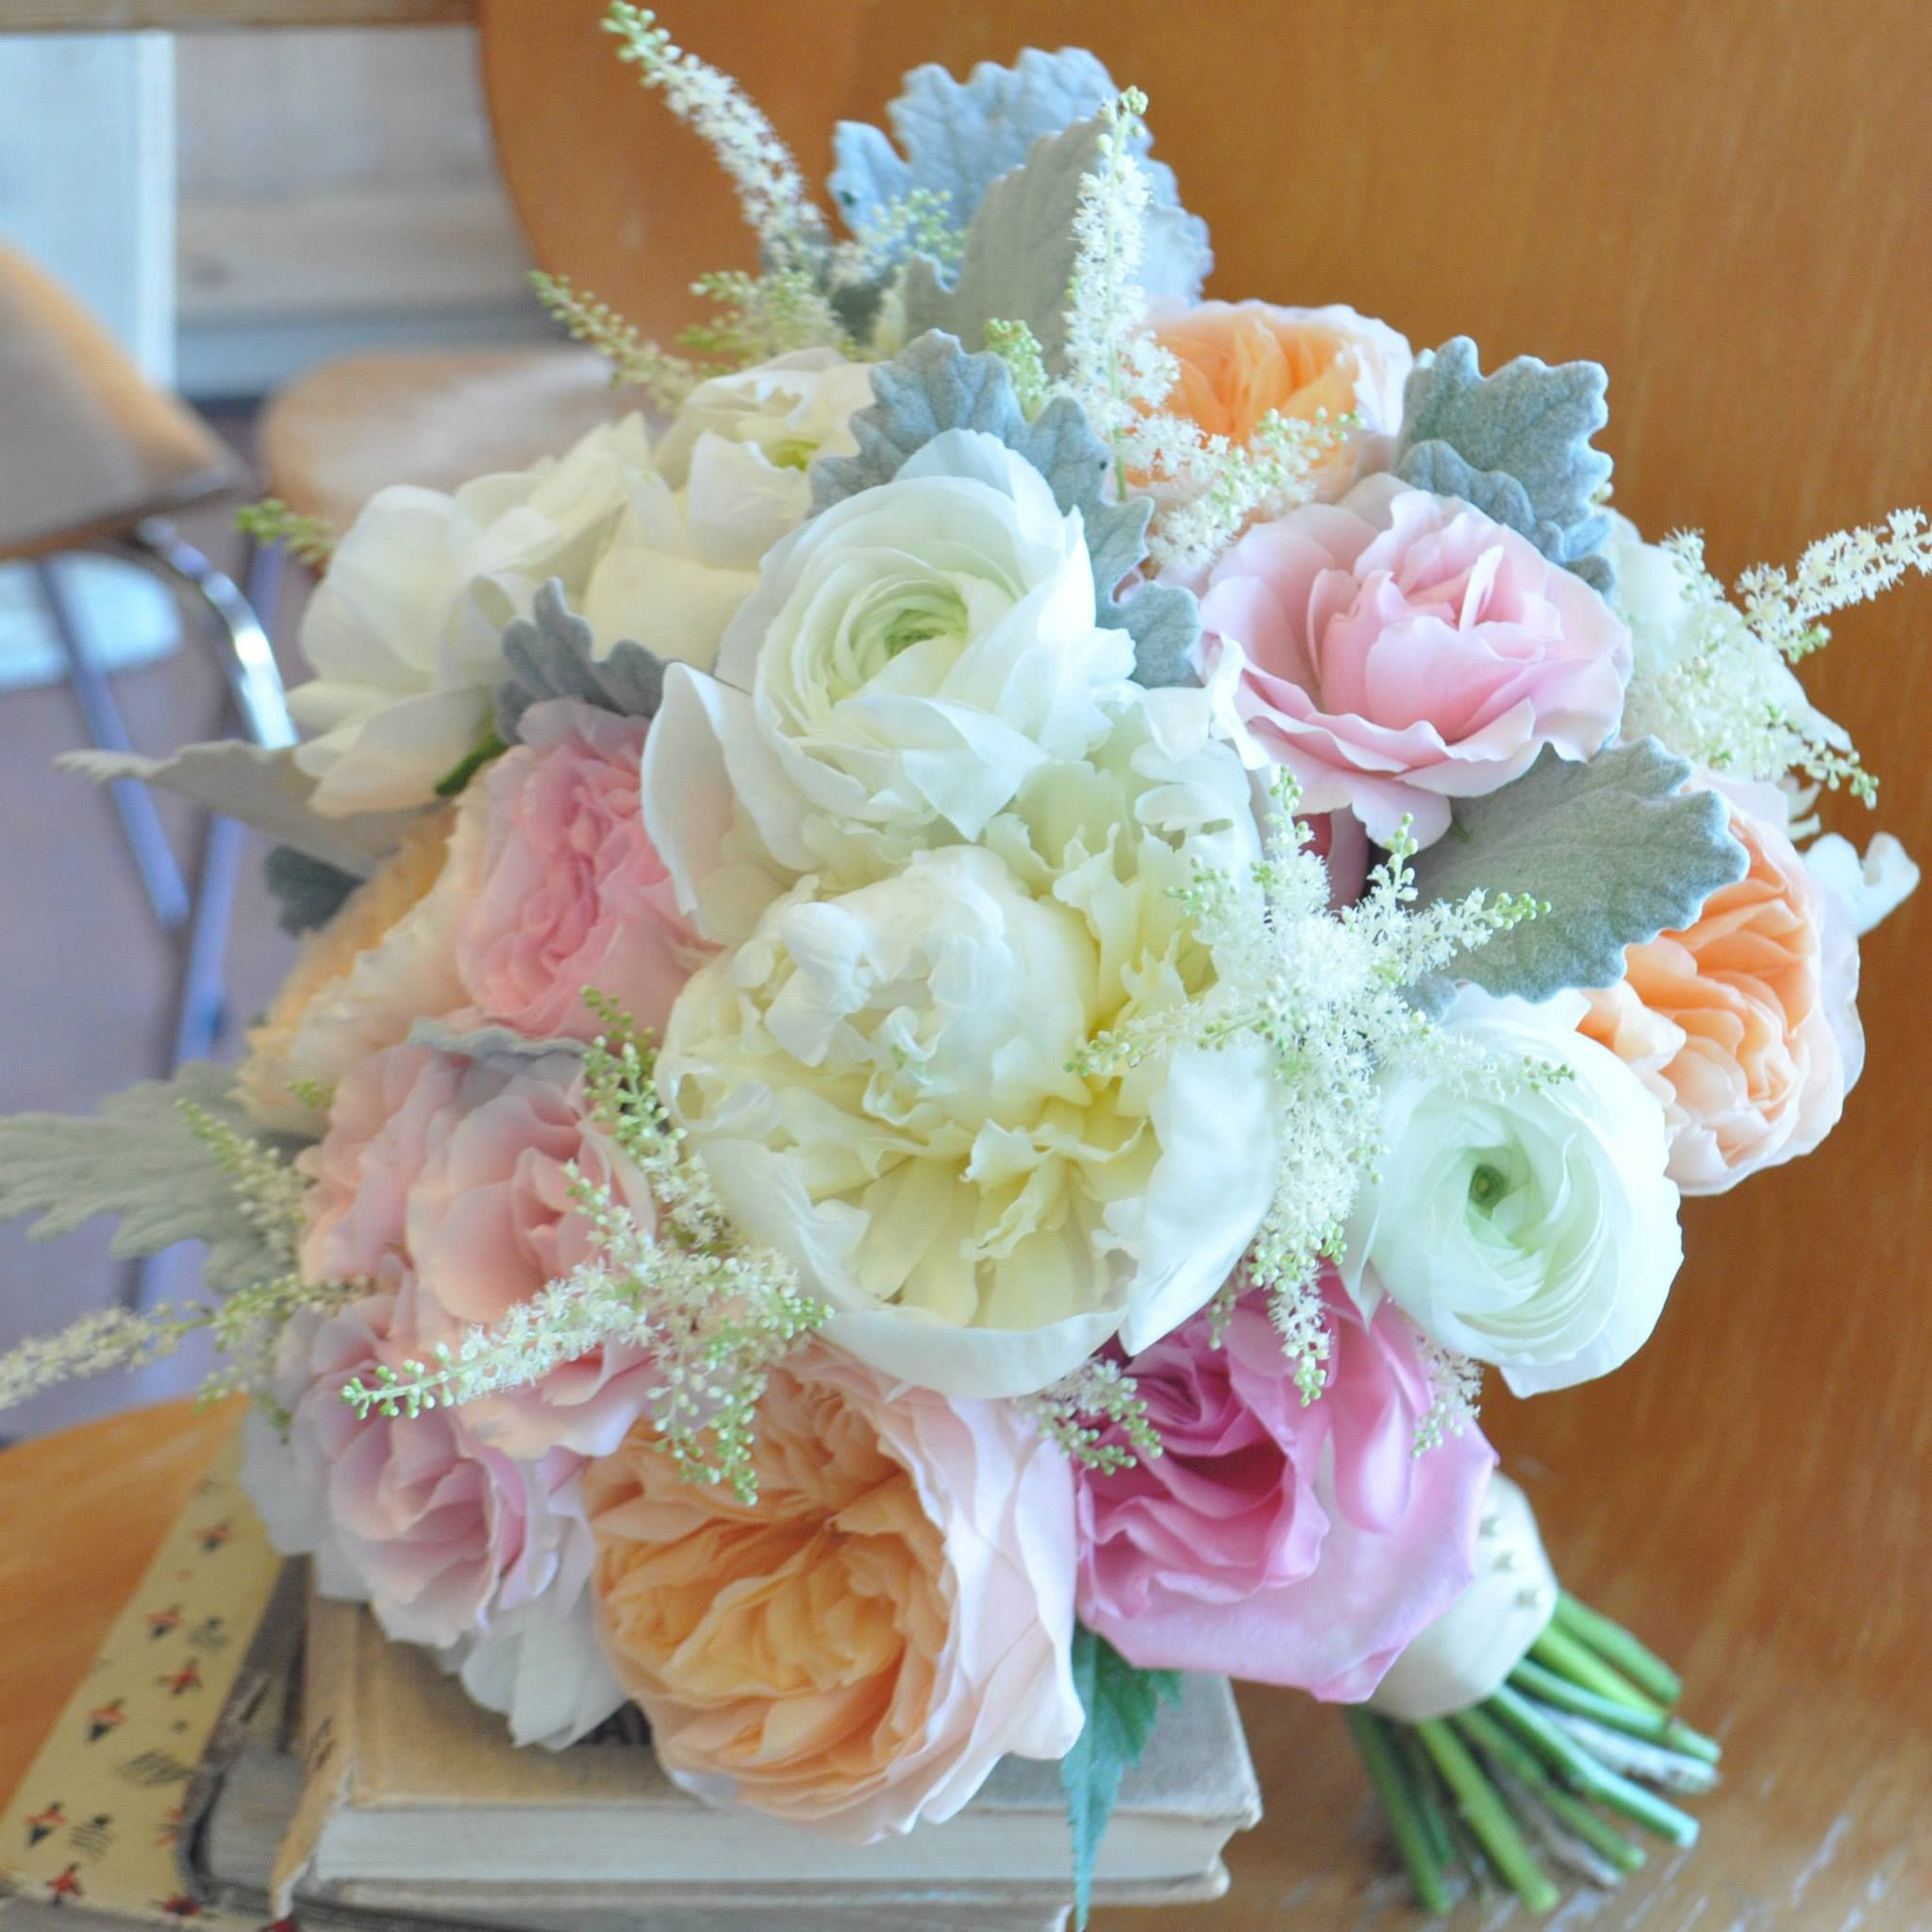 Lush wedding bouquets florists lush and floral designs from roses to peonies to calla lily these lush wedding bouquets from one of our izmirmasajfo Choice Image